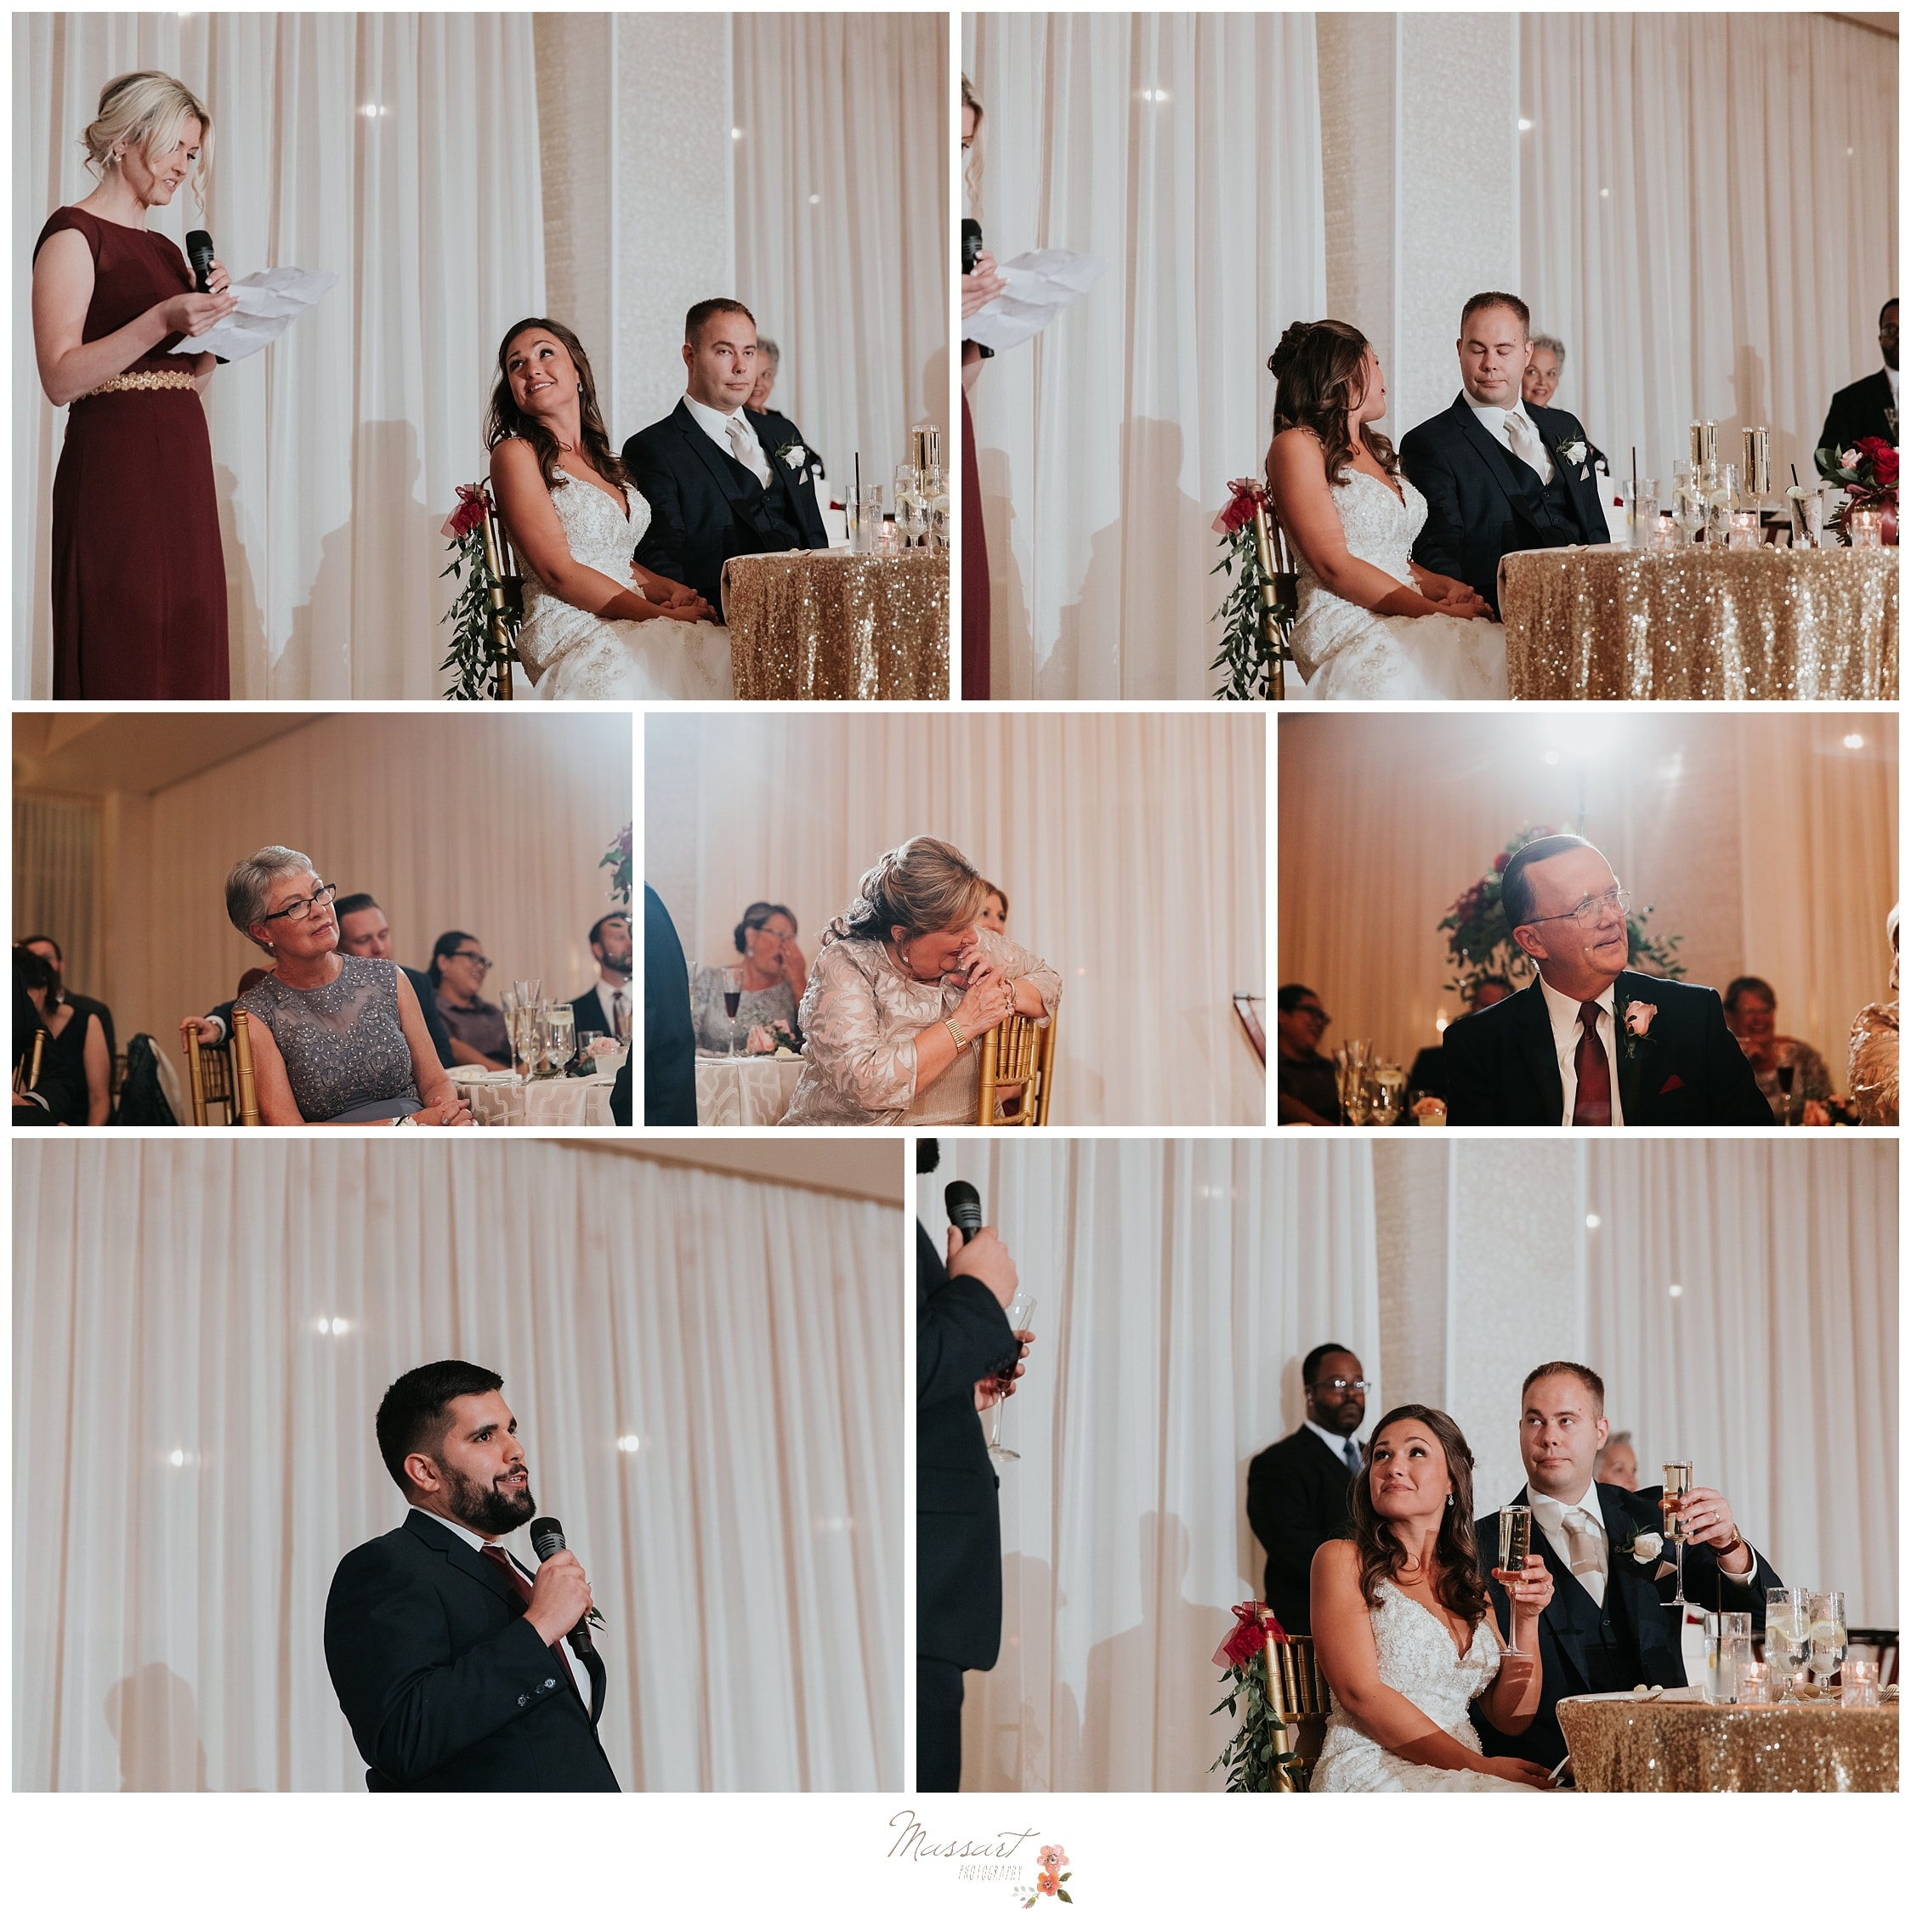 Maid of honor and the best man give speeches at the wedding reception photographed by Massart Photography Rhode Island